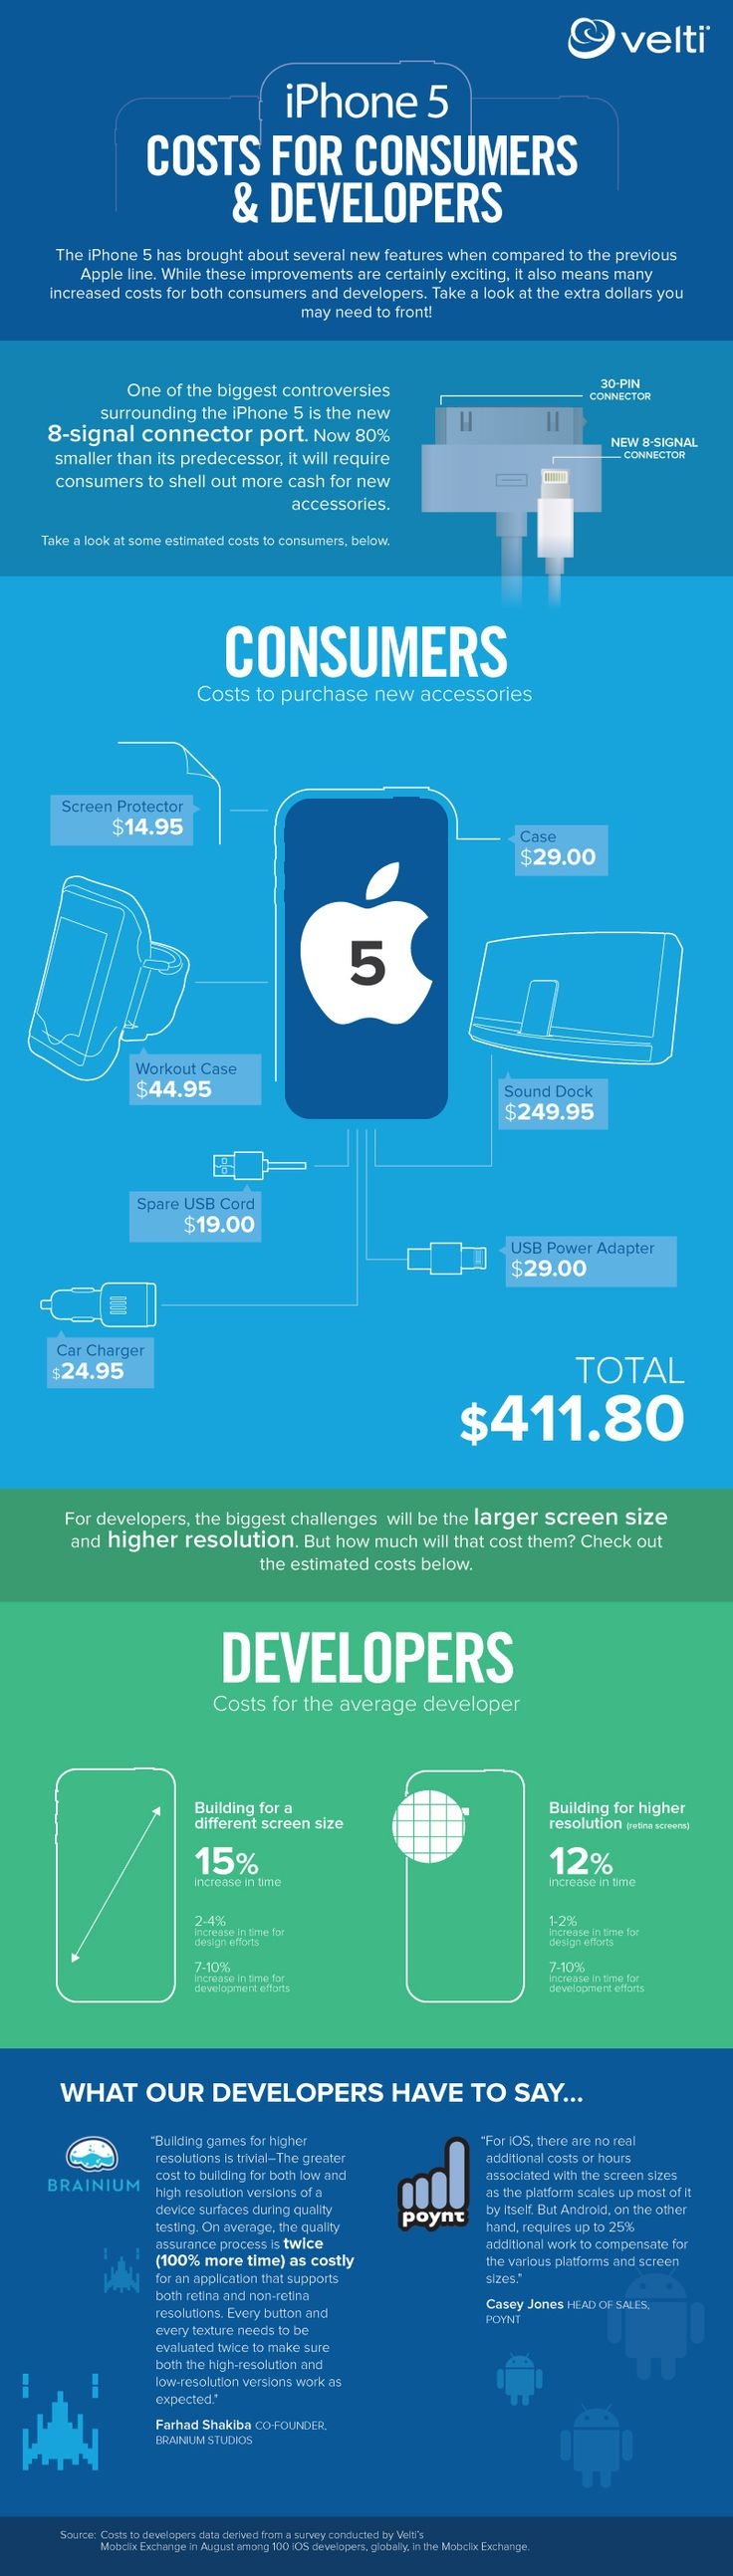 Infographic: What the iPhone 5 Costs Consumers & Developers